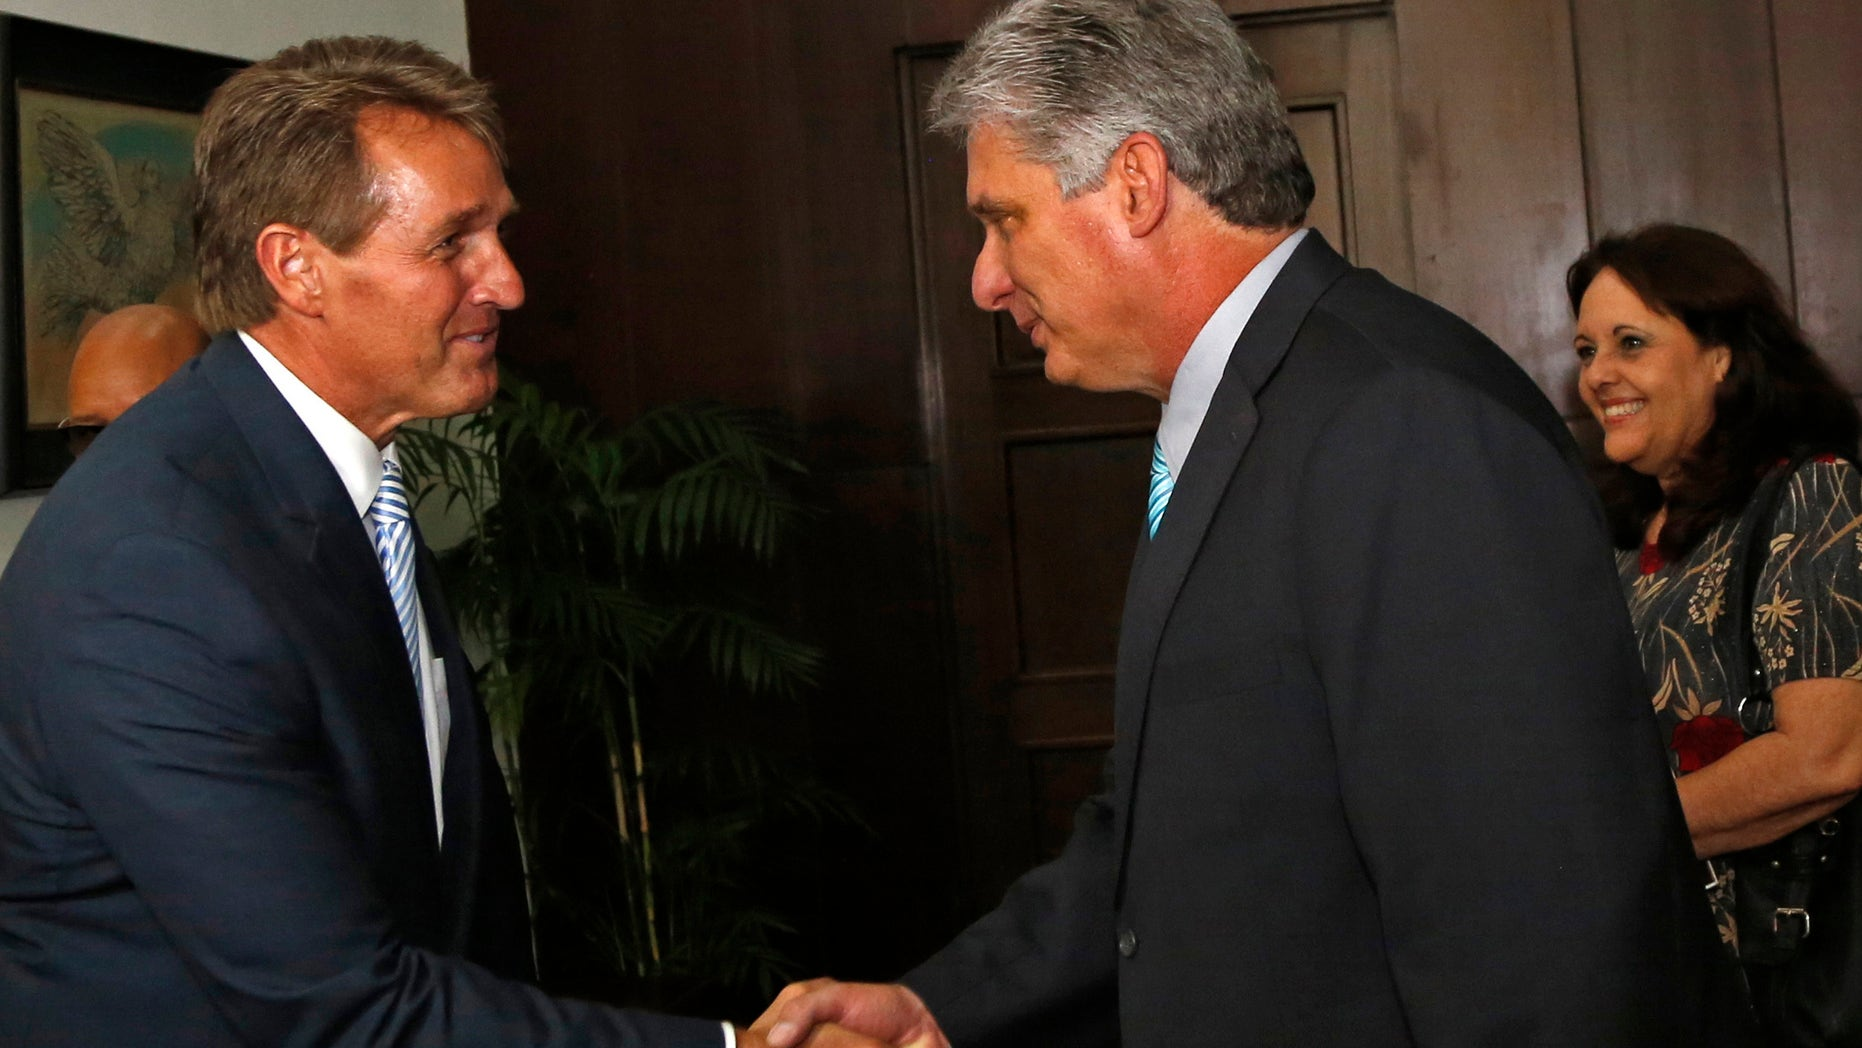 Sen. Jeff Flake, R-Ariz, shakes hands with Cuba's First Vice President Miguel Diaz Canel, at Revolution Palace, in Havana, Cuba, Saturday, June 13, 2015. (AP Photo/Desmond Boylan, Pool)